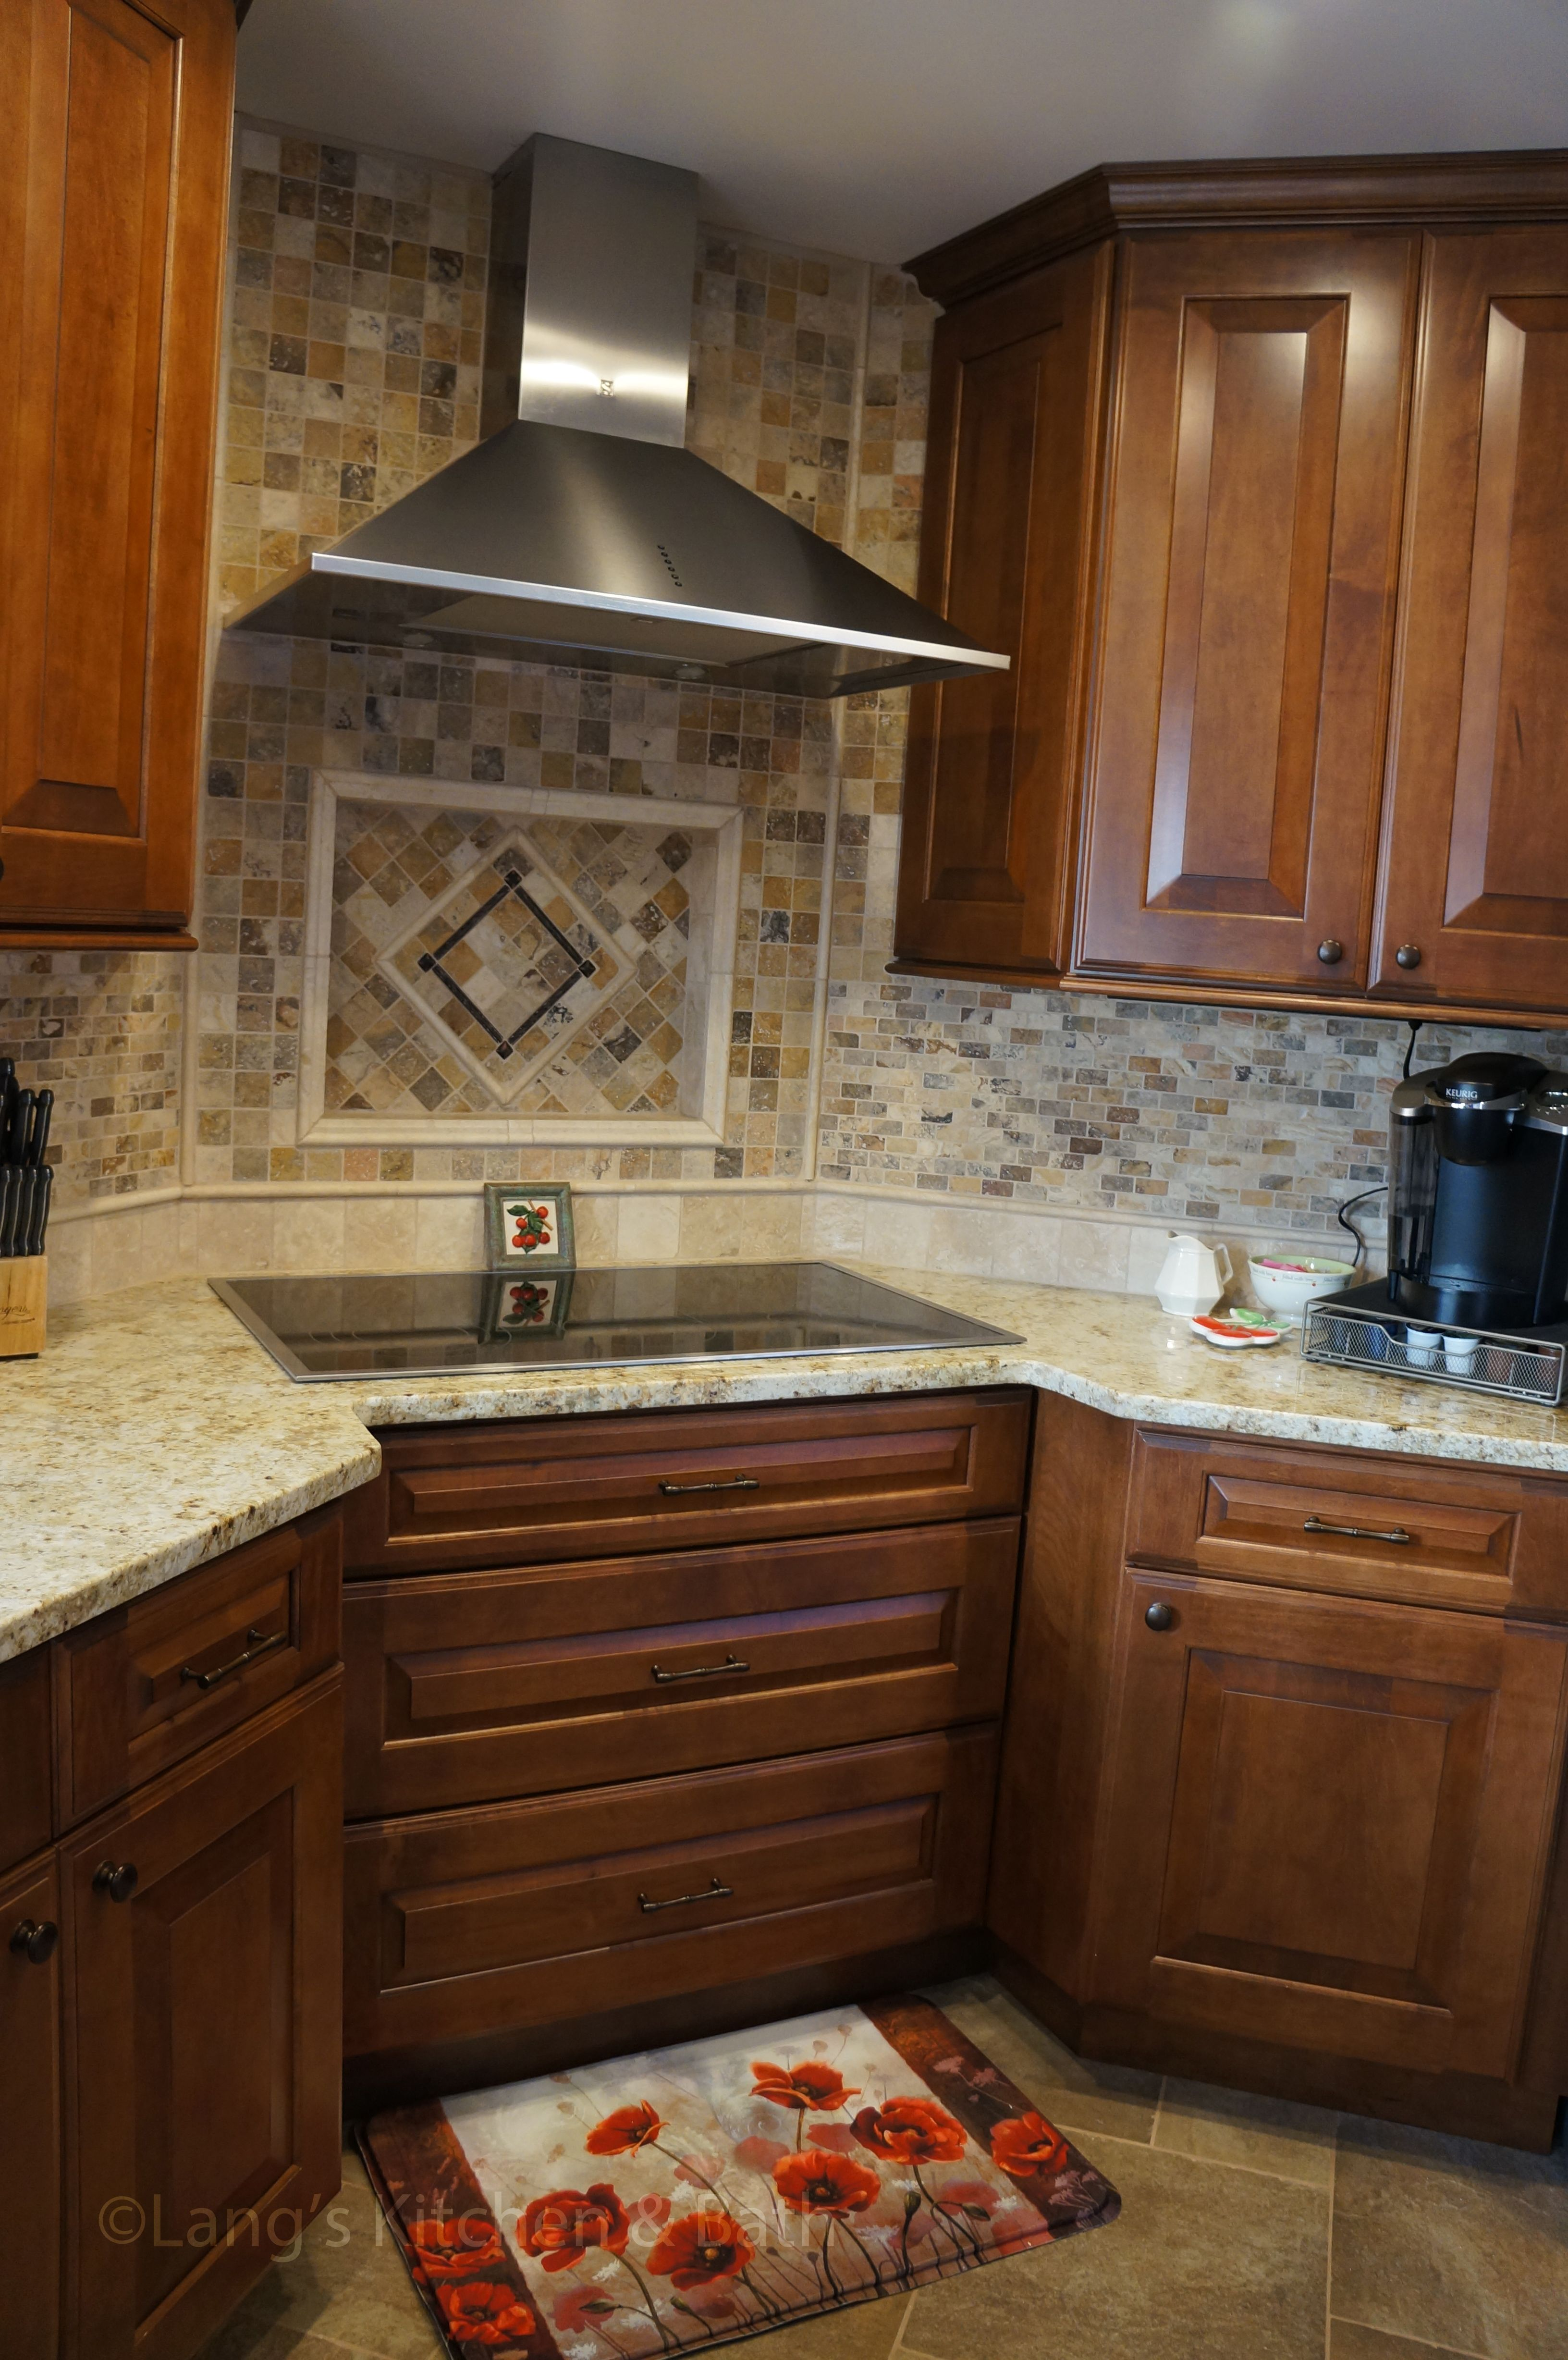 Double Oven + Stove with Built-in Microwave above (Best option for ...